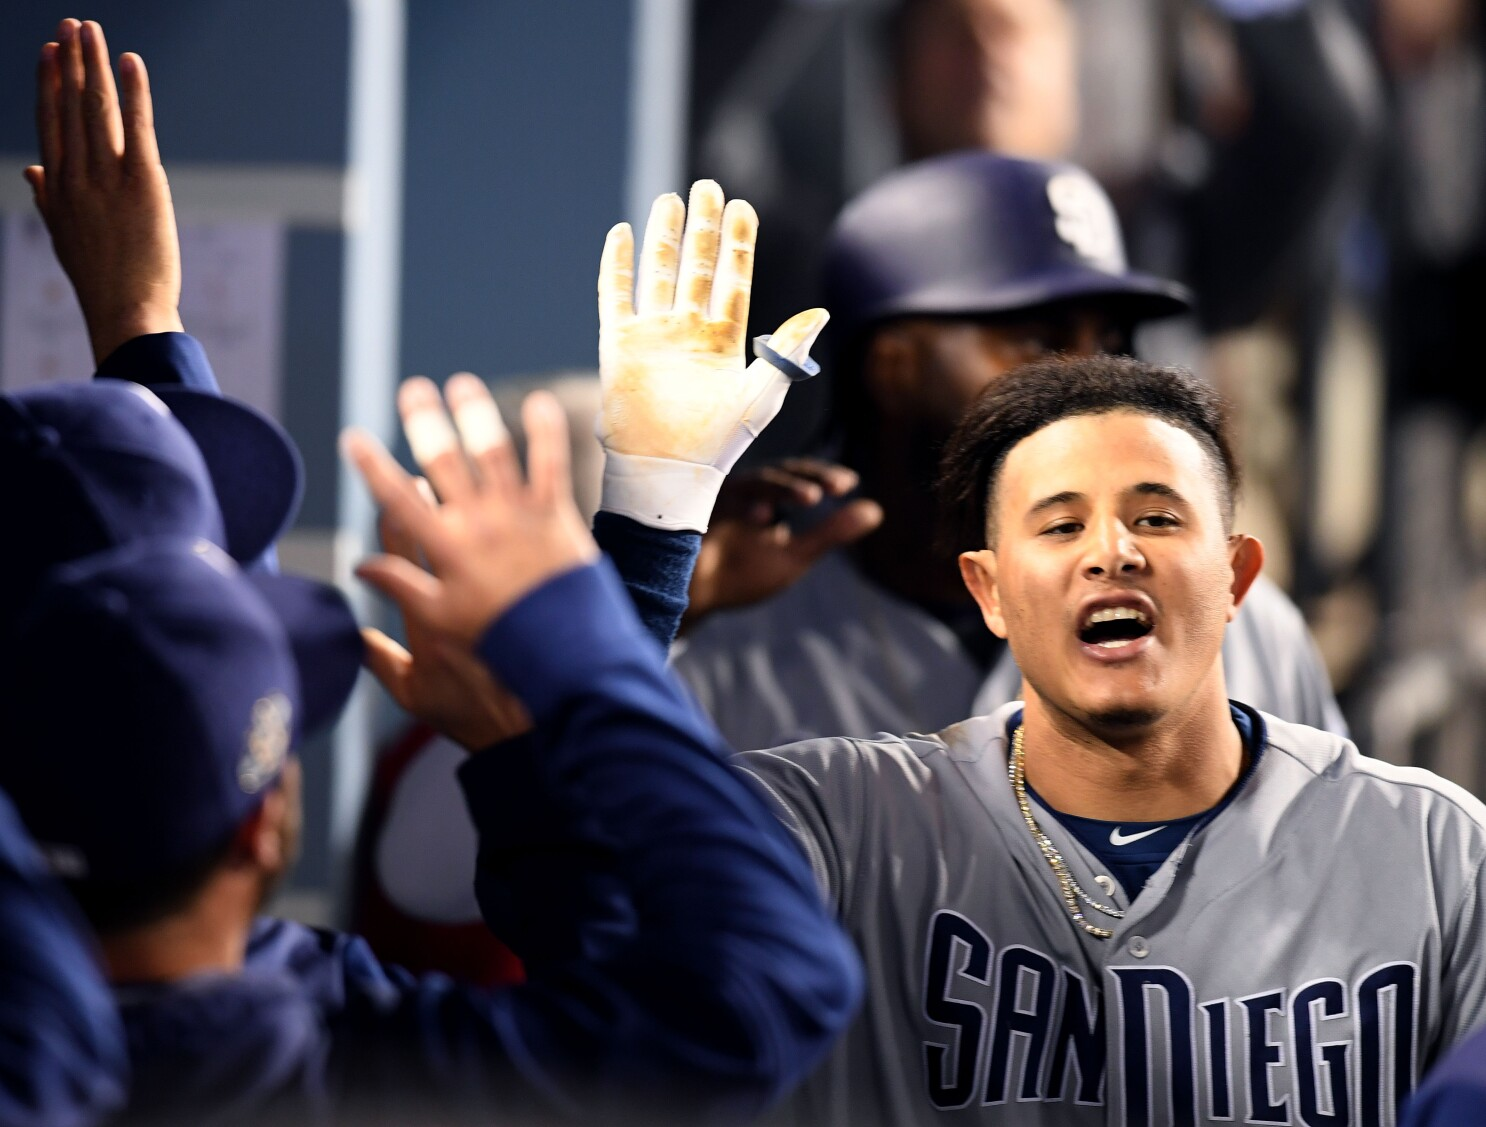 Column: Machado's 'bet' with Dodgers fan shows off new